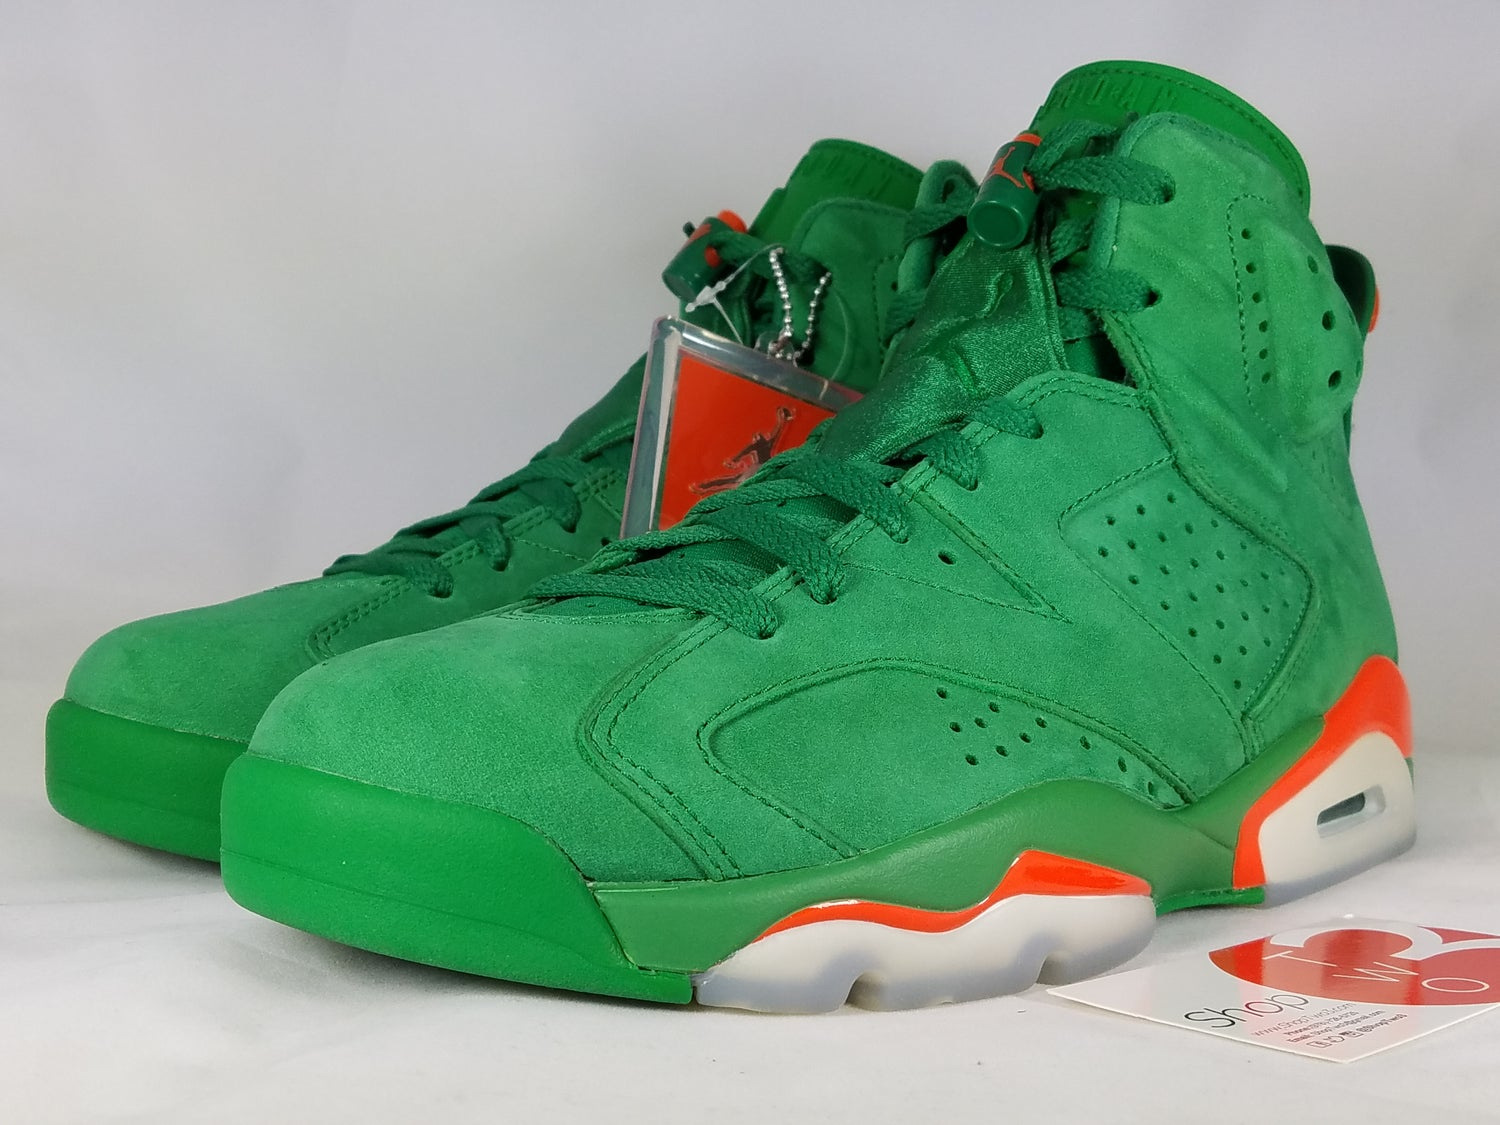 5a3f0b93eed Jordan 6 Retro Gatorade Green | Shoptwo3 - Sneaker Shop Authentic ...